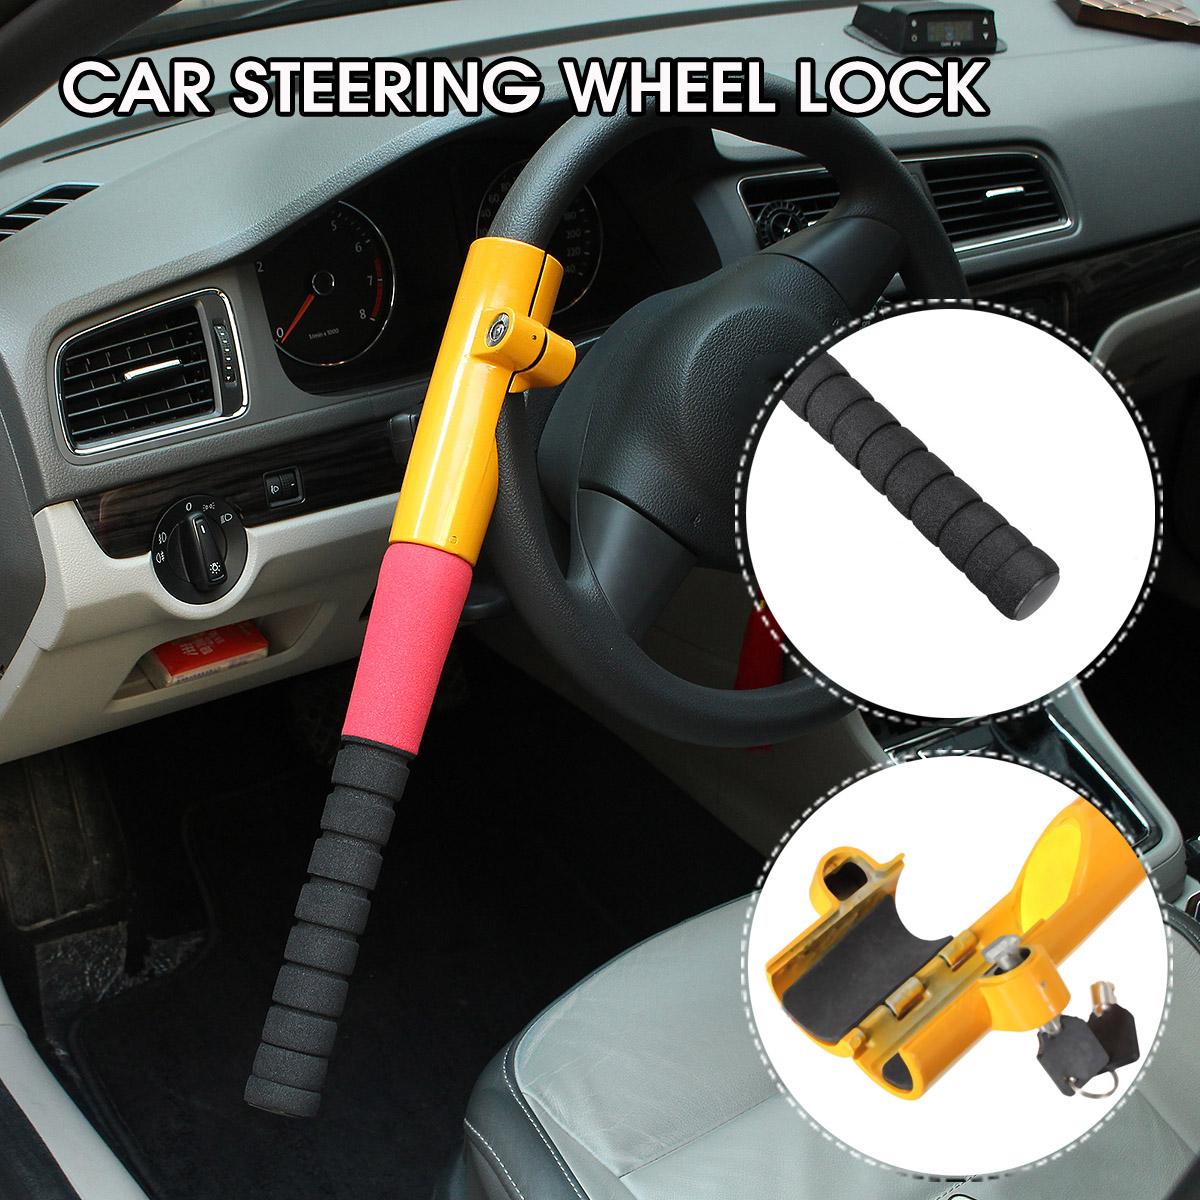 2013-DATE STOPLOCK HIGH SECURITY CAR STEERING WHEEL LOCK FOR MERCEDES A CLASS